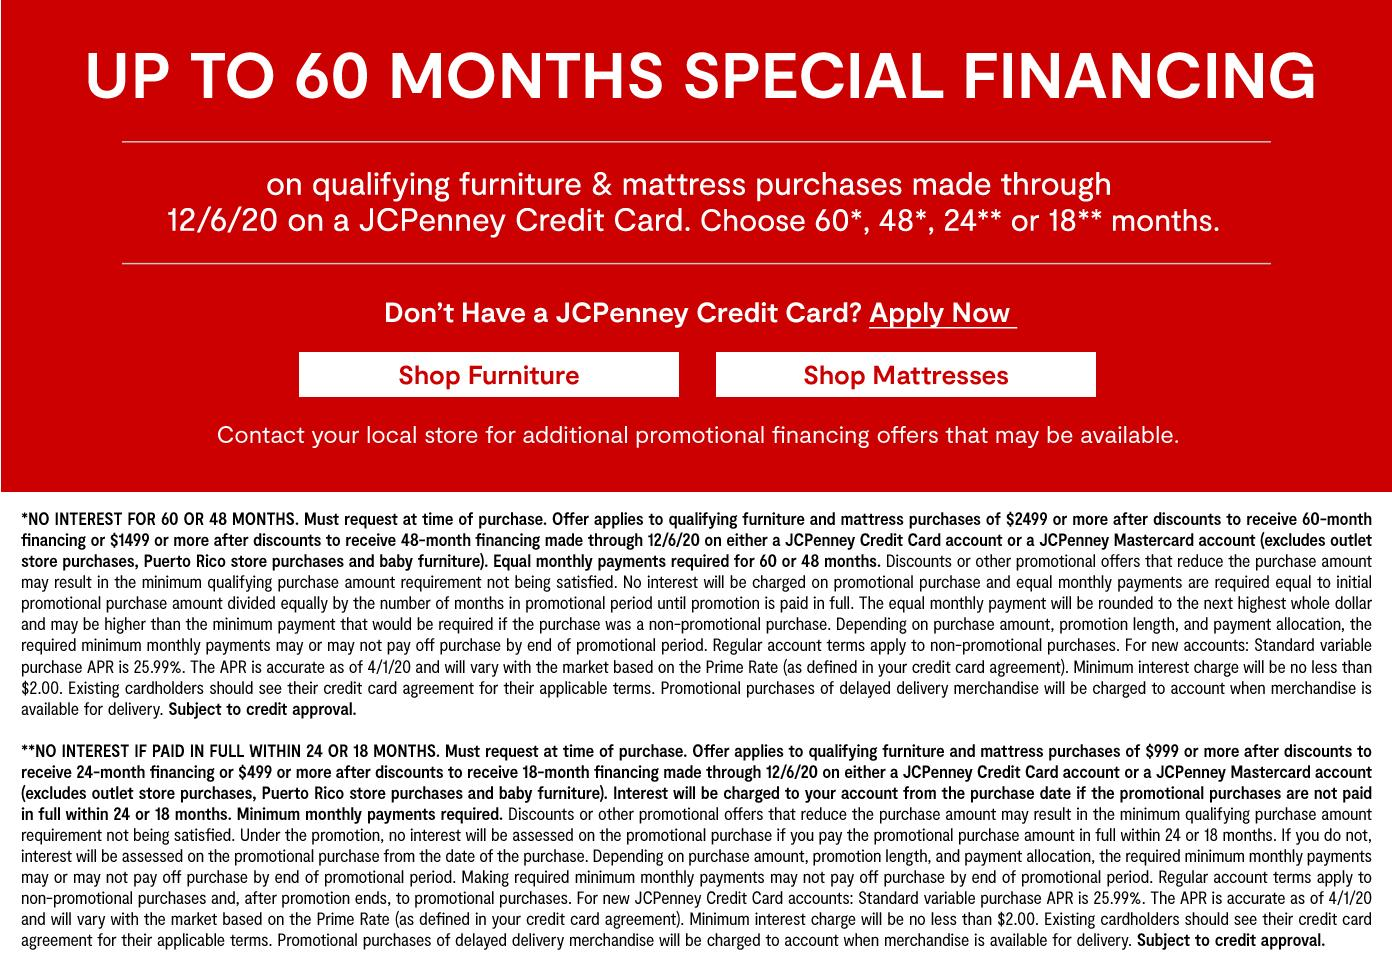 Up to 60 months special financing on qualifying furniture & mattress purchases by 12/6/20 on a JCP credit card. Choose 60,48,24,18 months. Get Details